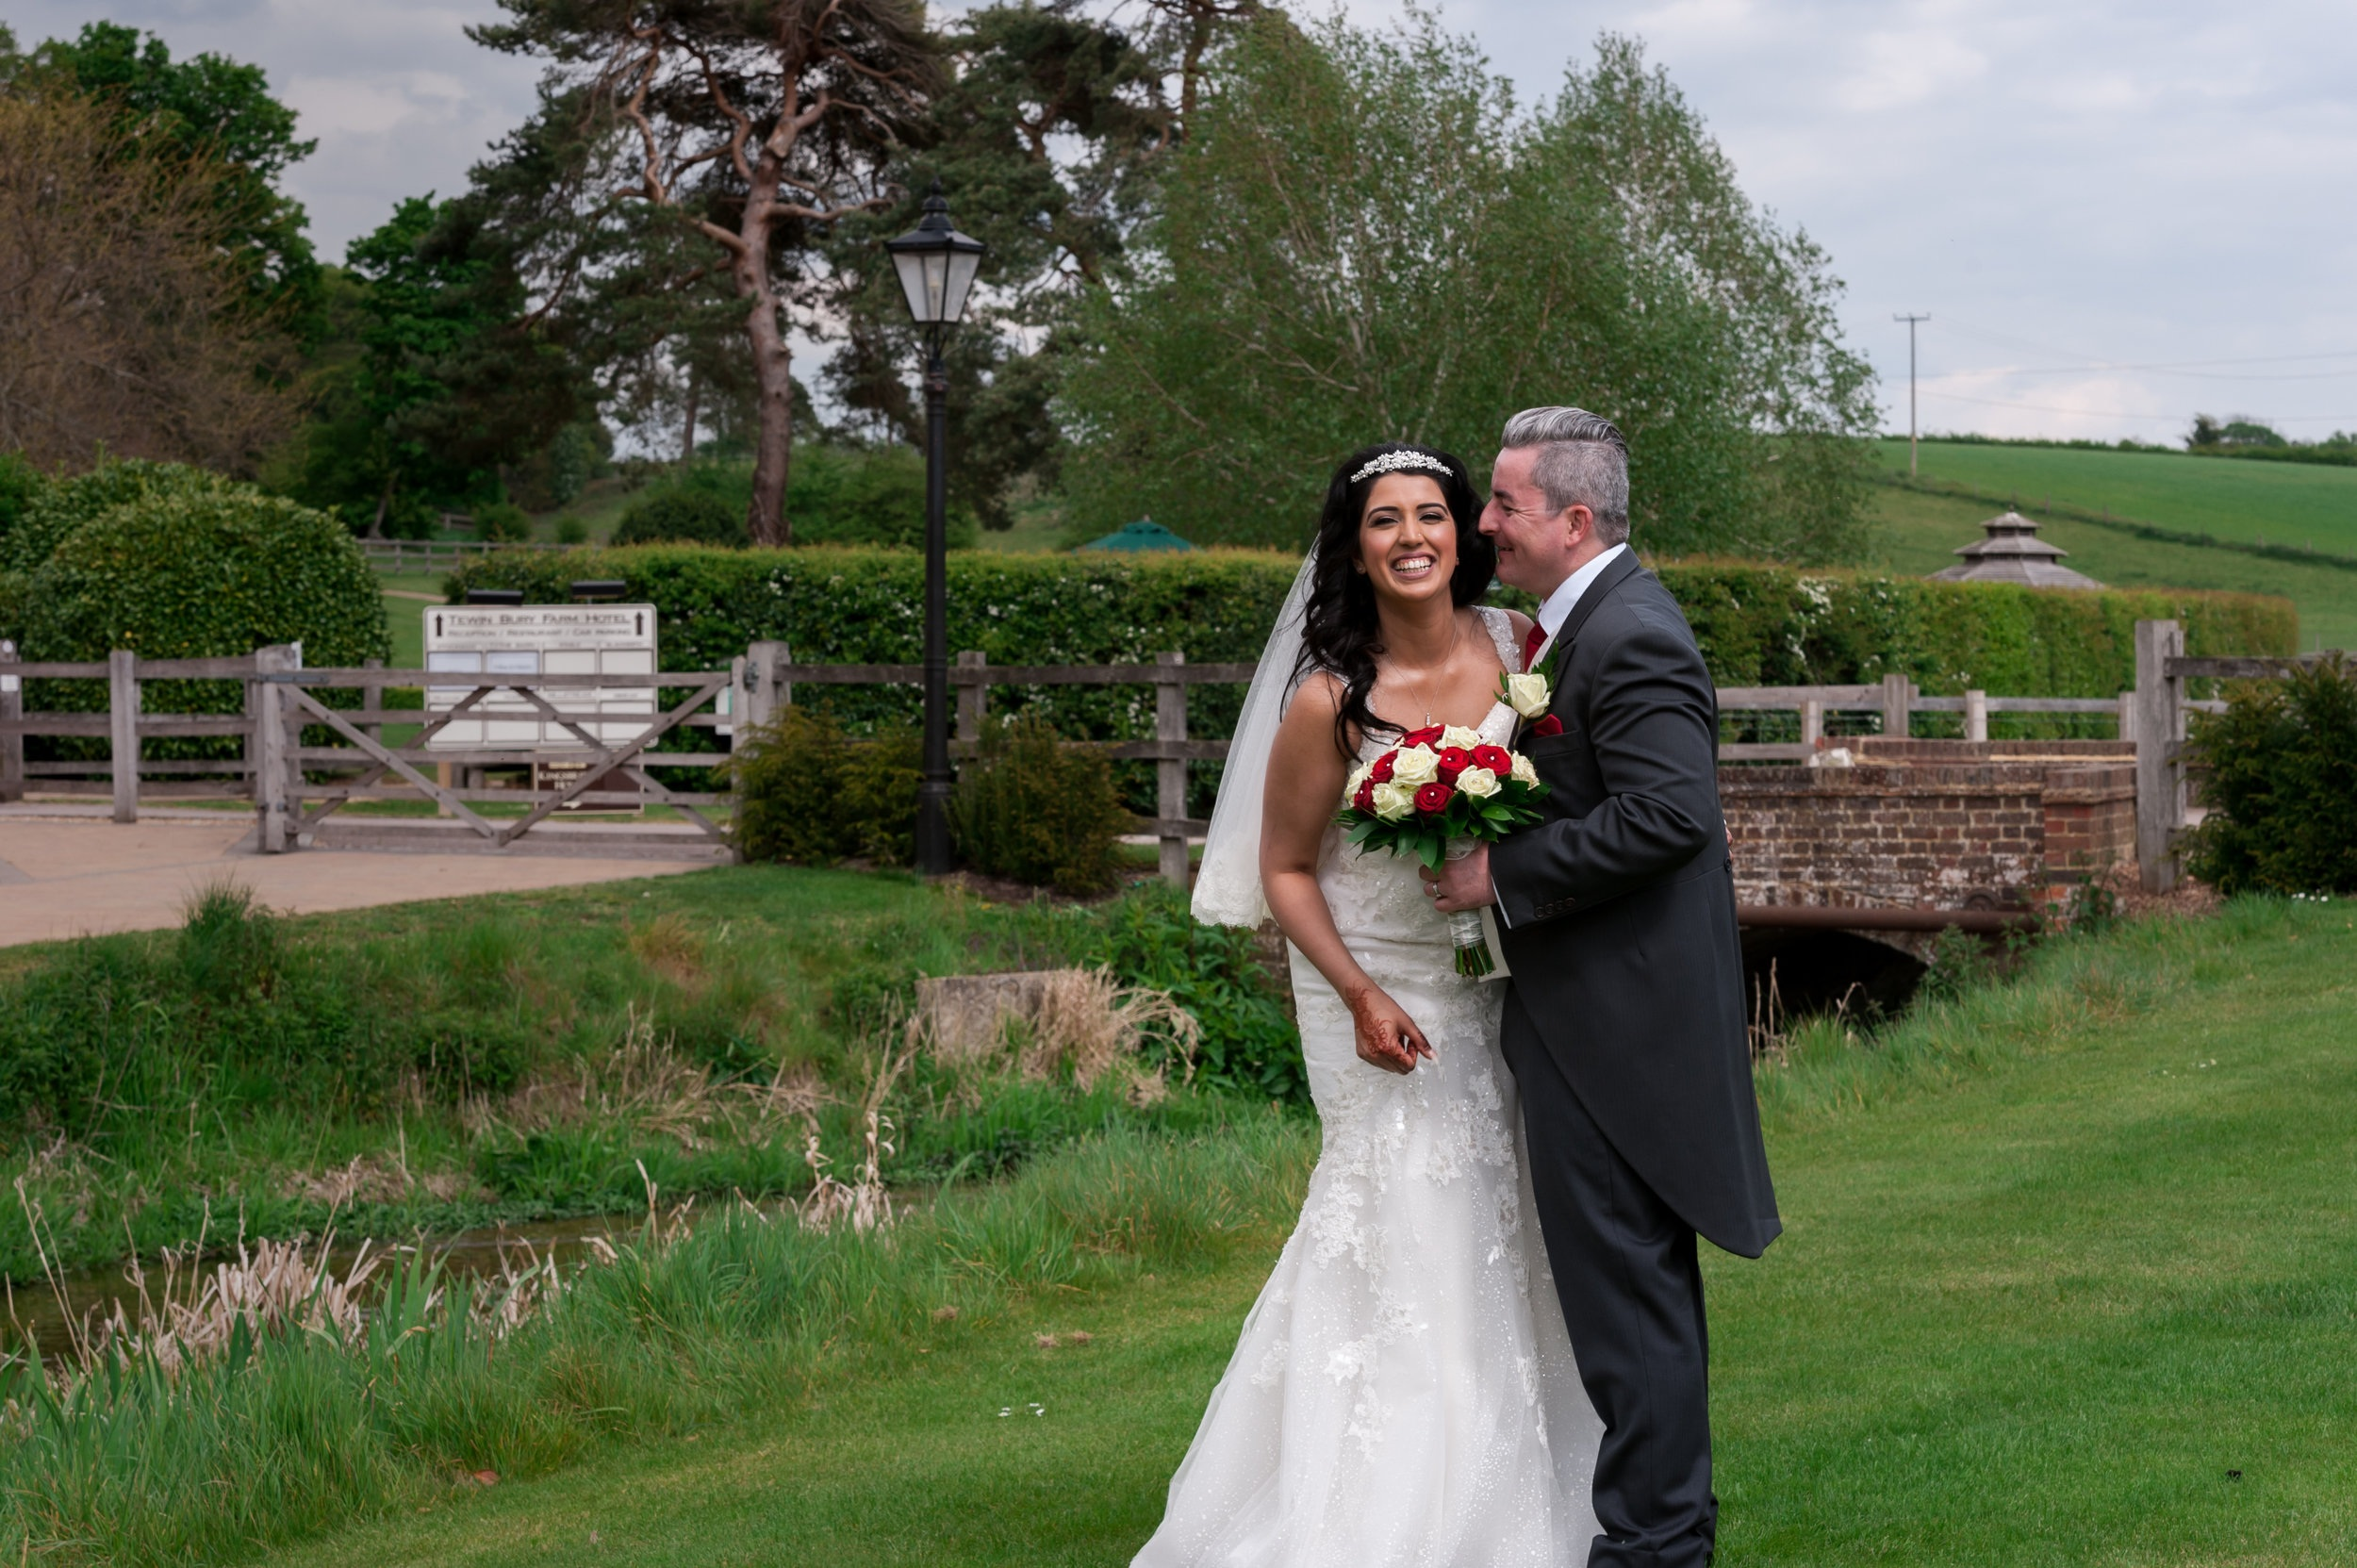 Tewin Bury Farm Hotel Wedding - photographer: Josephine Gray